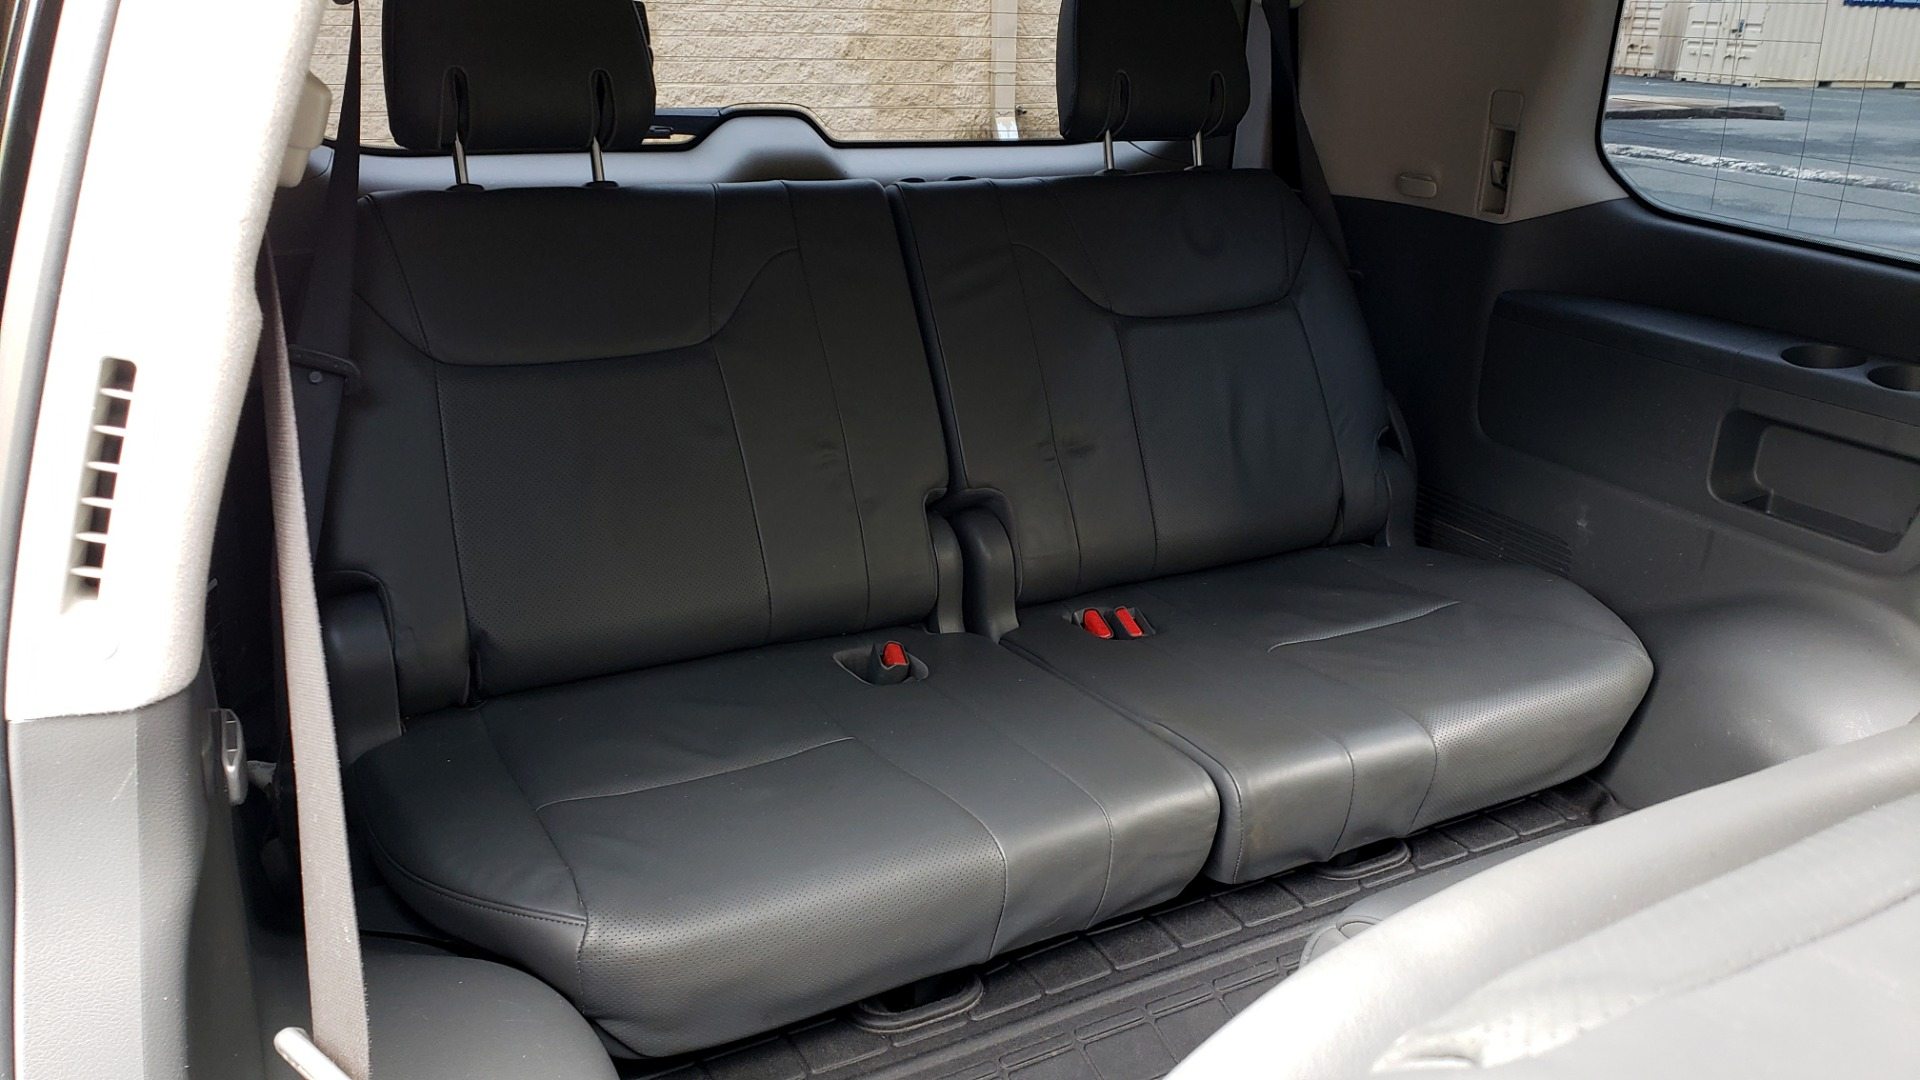 Used 2008 Lexus LX 570 4WD / TECH PKG / NAV / SUNROOF / MARK LEVINSON / PARK ASST for sale $22,995 at Formula Imports in Charlotte NC 28227 65